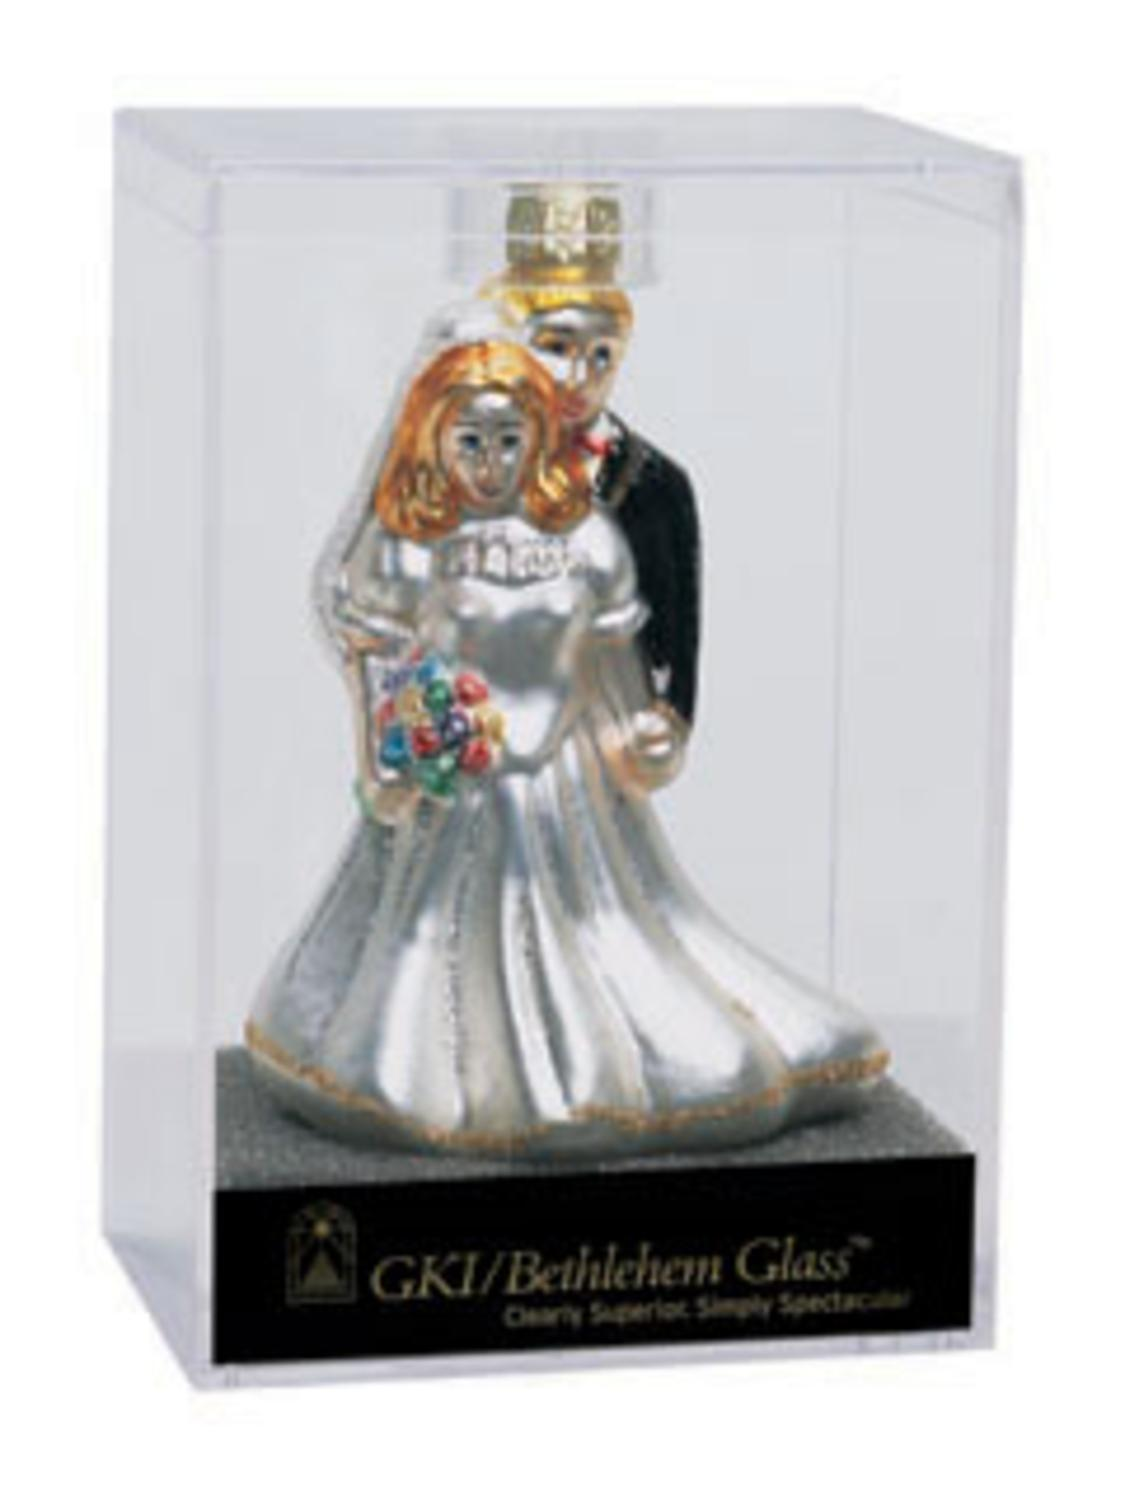 Set-of-24-Glittery-4-Bride-And-Groom-Glass-Wedding-Christmas-Ornament-#822204